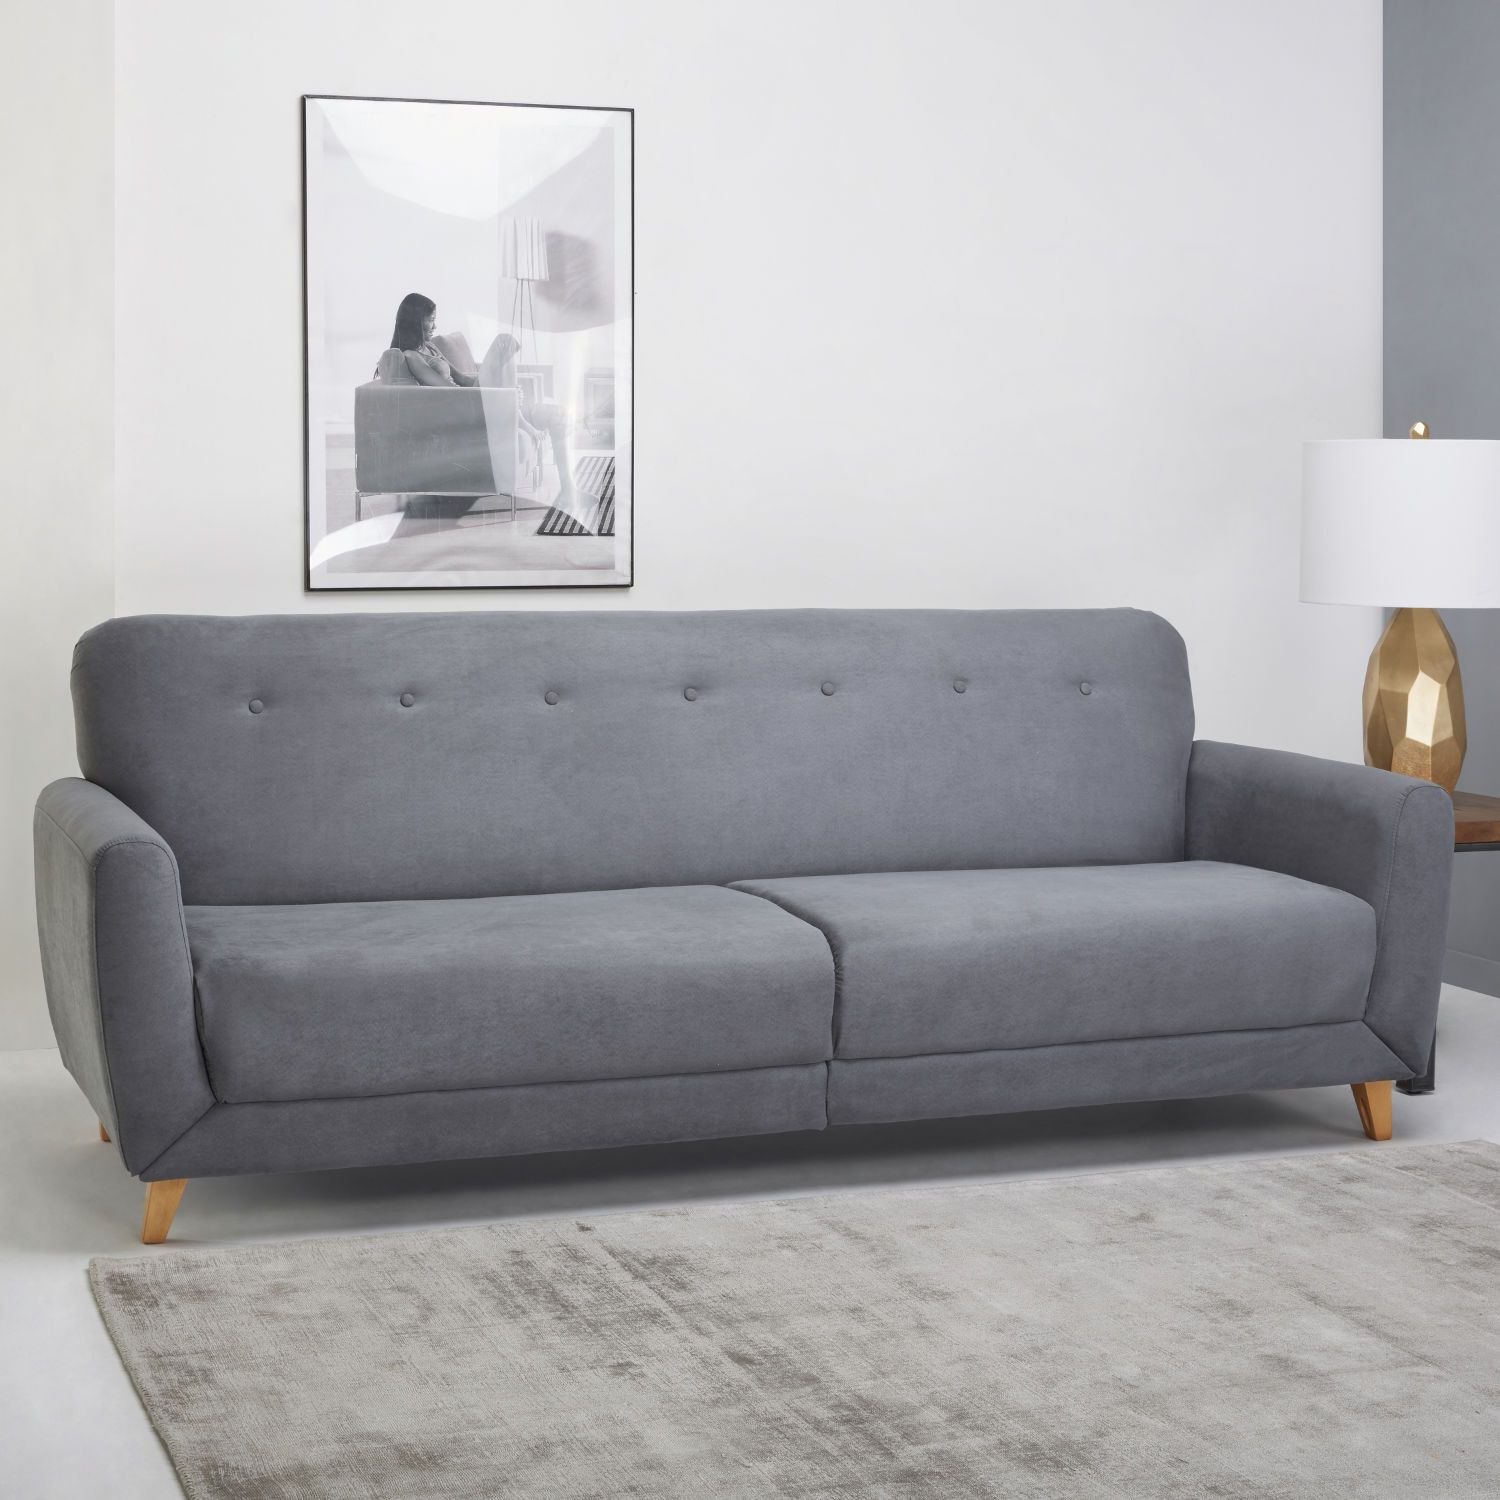 Sofa Bed Next Day Delivery London L Di Bandung Habitat Grey Couch 3 Seater Mid Century Inspired Design Discover Ideas About Camden